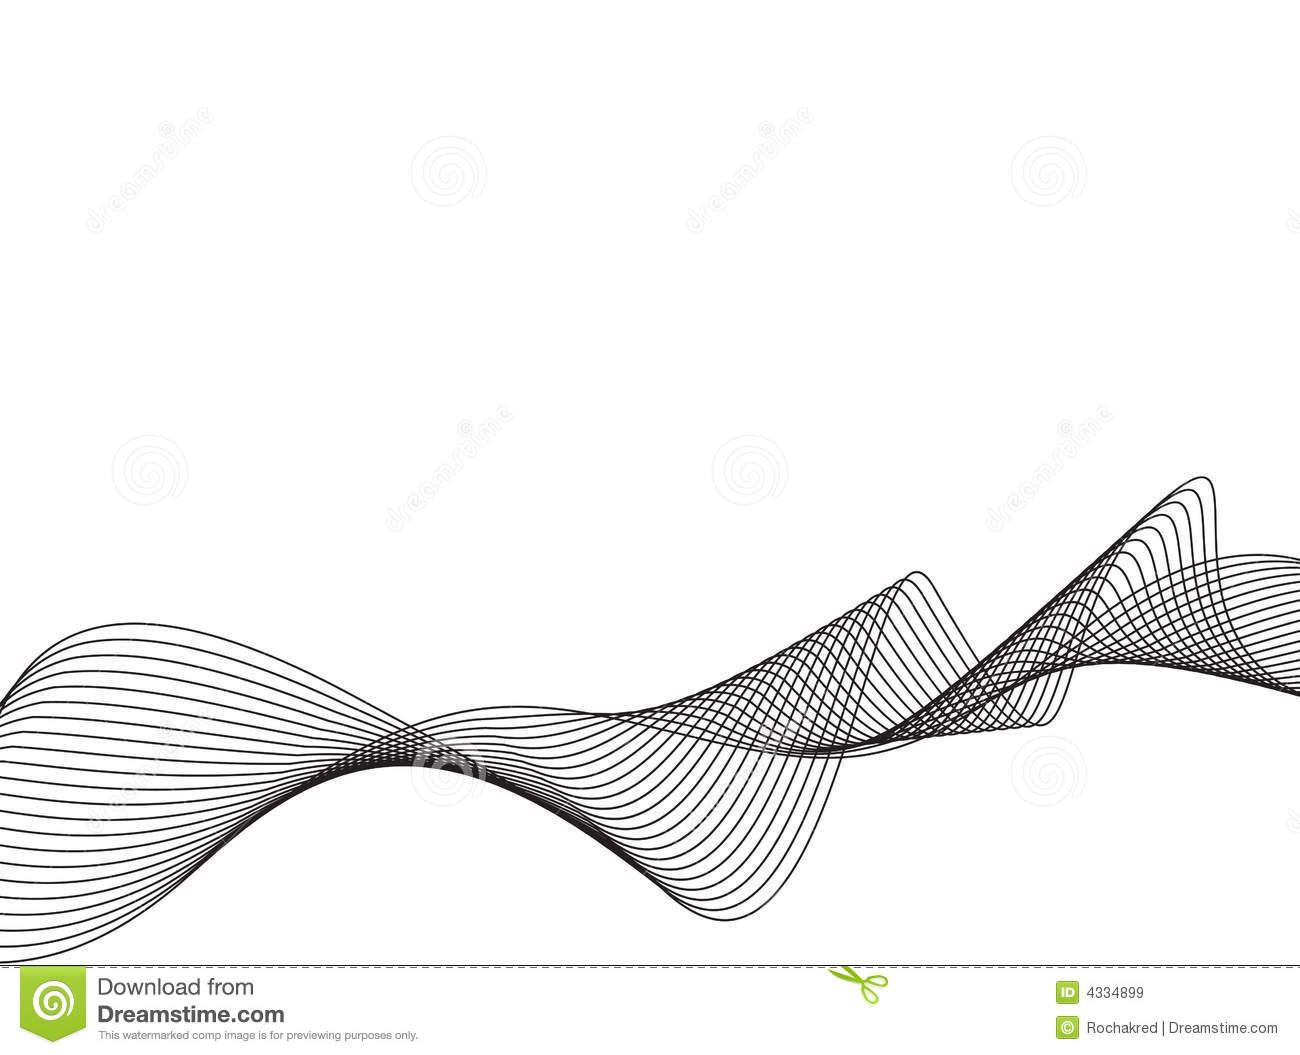 Line Art Vector Design : Vector line art waves g s